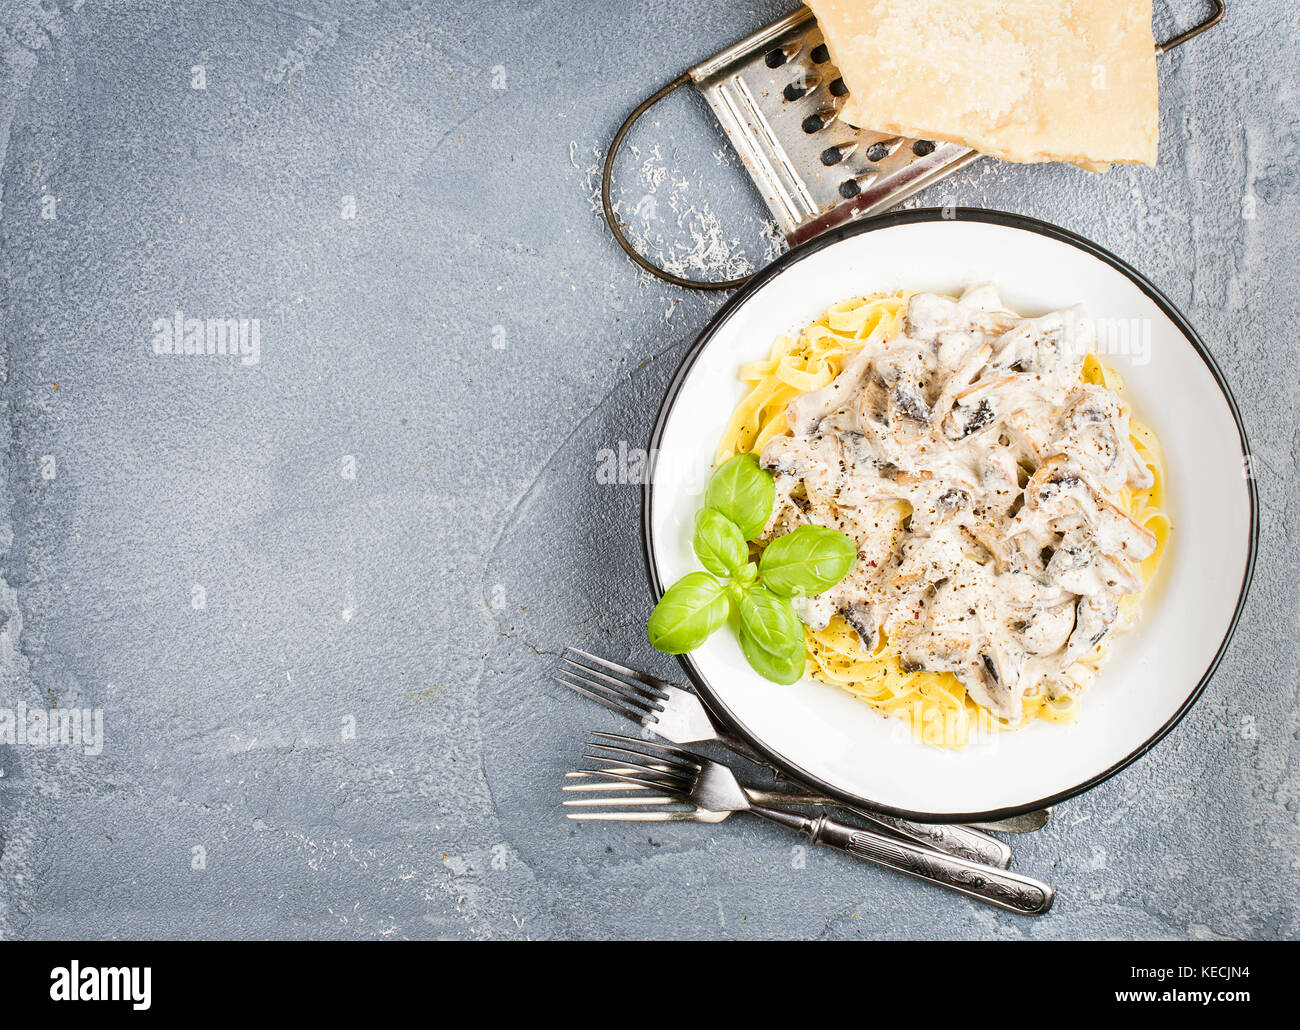 Tagliatelle pasta with mushrooms and creamy sauce, parmesan cheese over concrete textured background - Stock Image